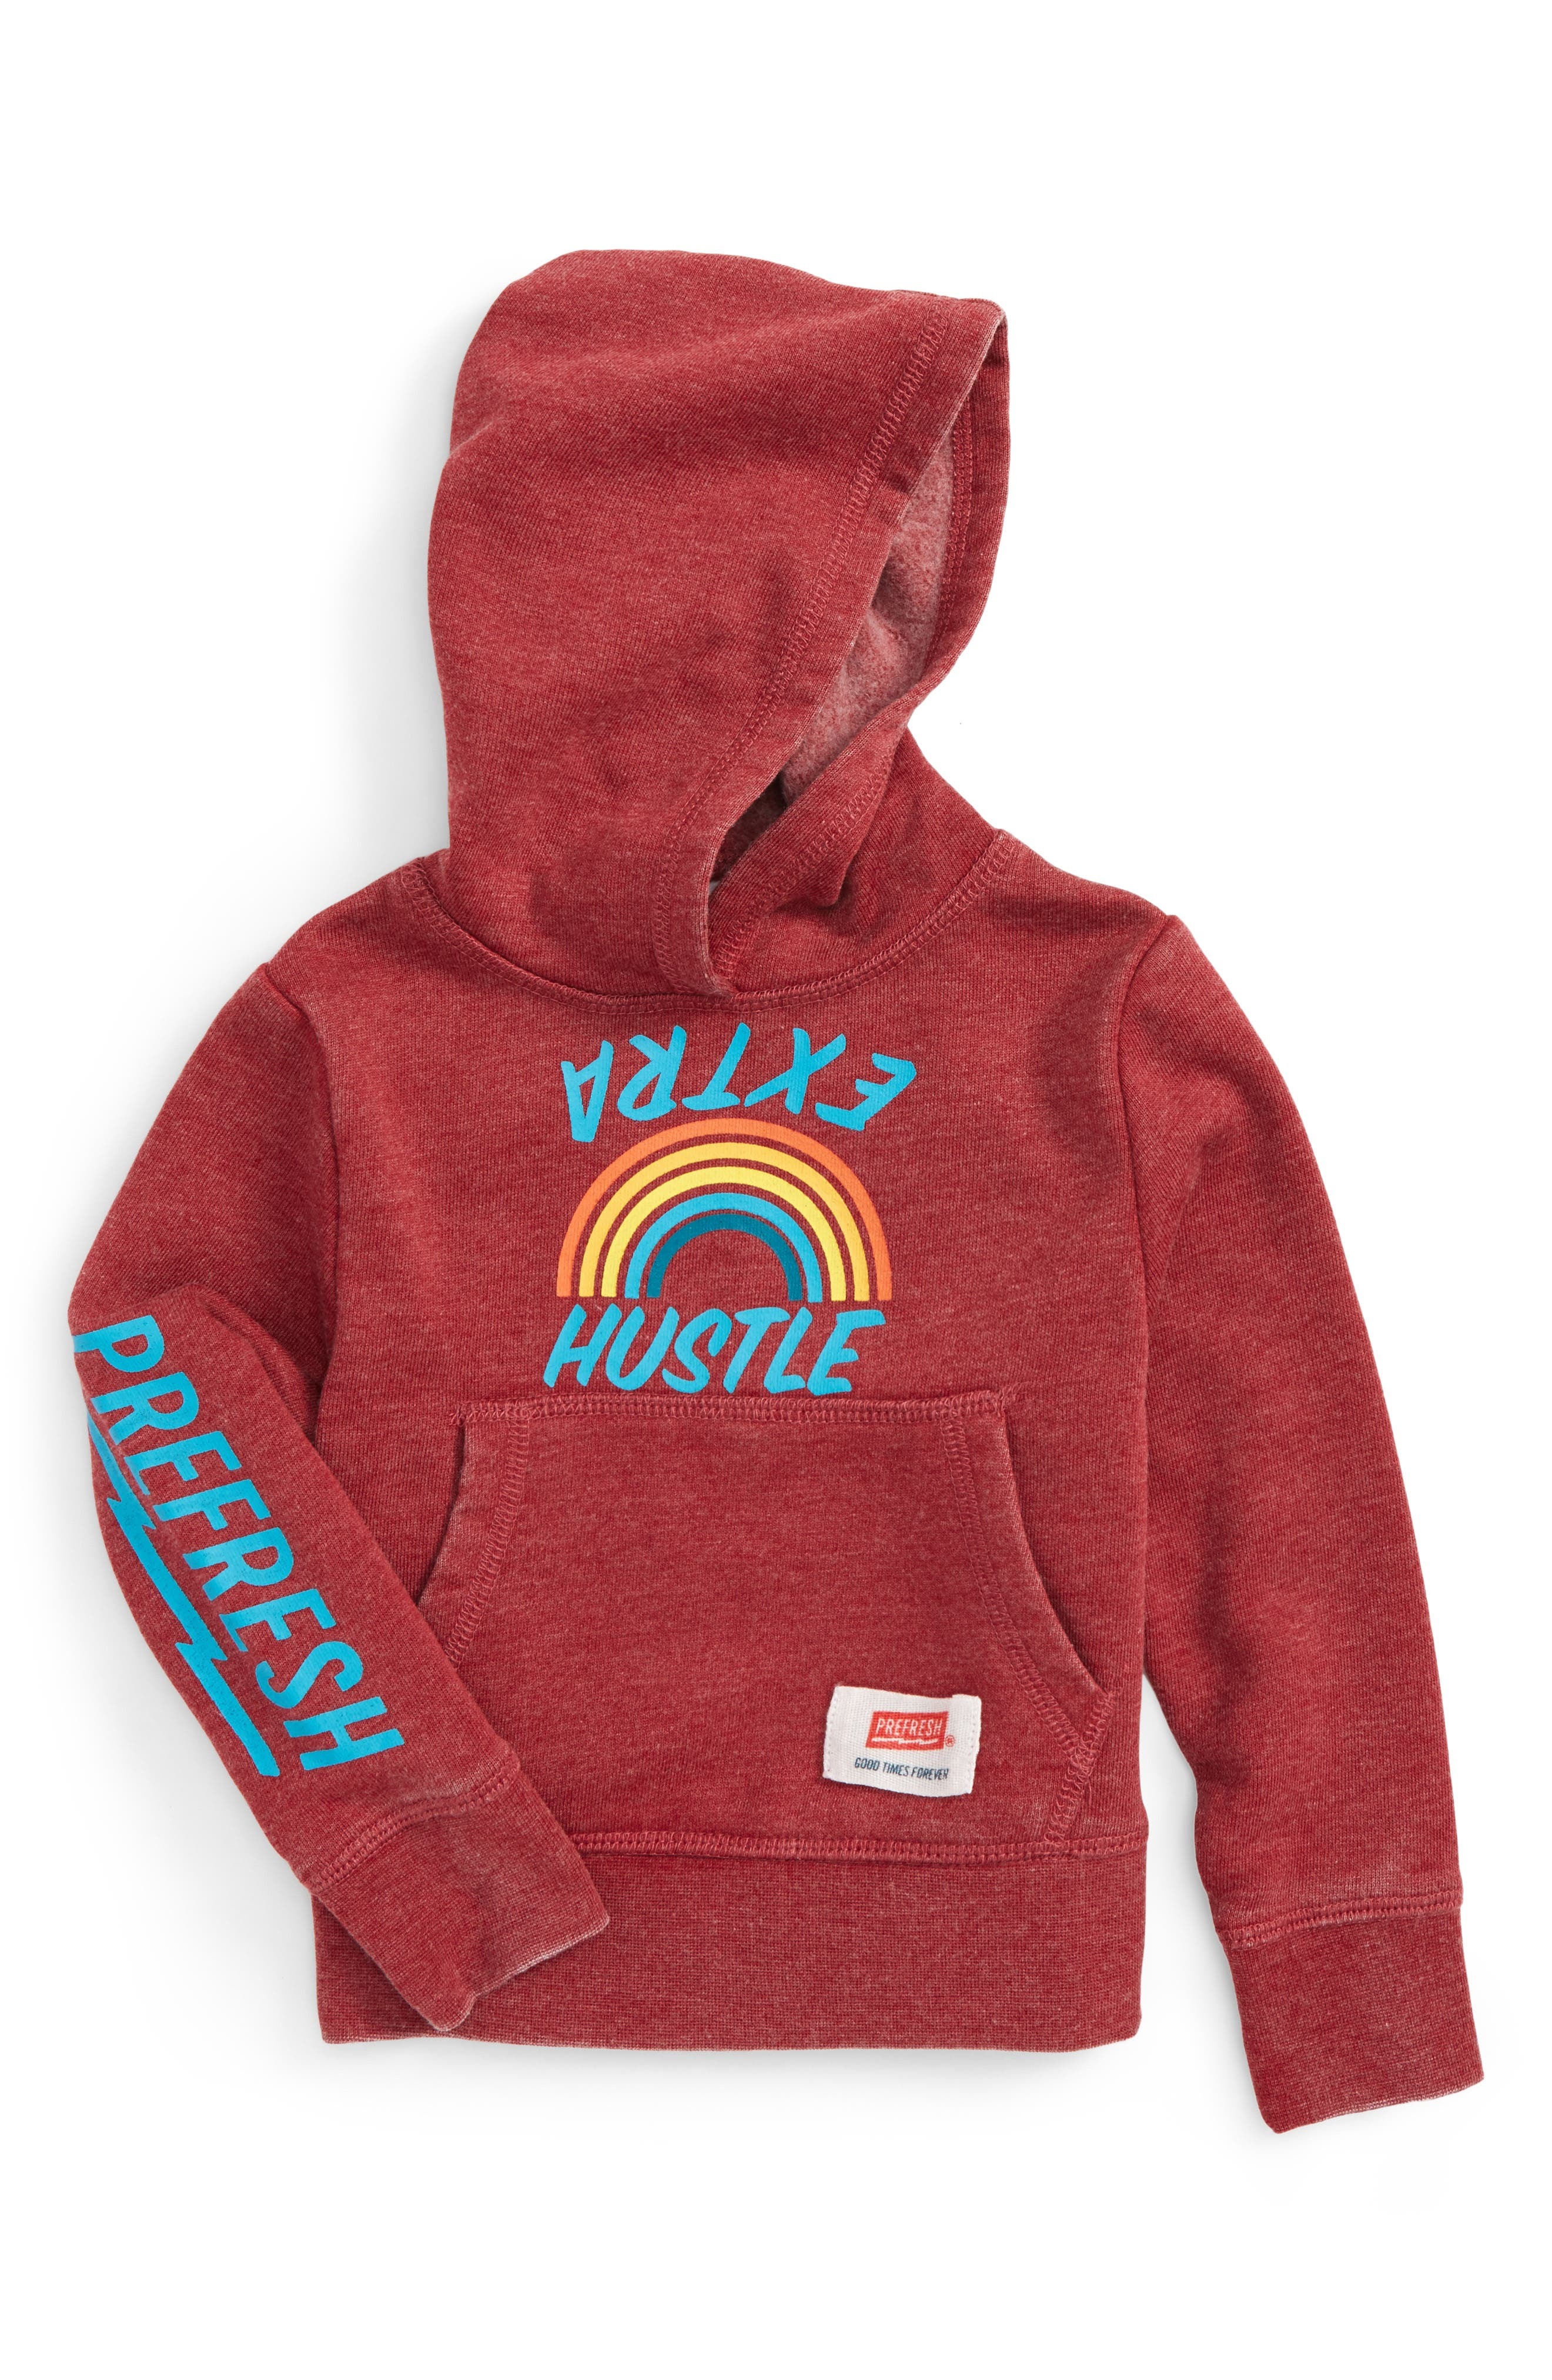 Alternate Image 1 Selected - Prefresh Extra Hustle Graphic Sweatshirt (Baby Boys)